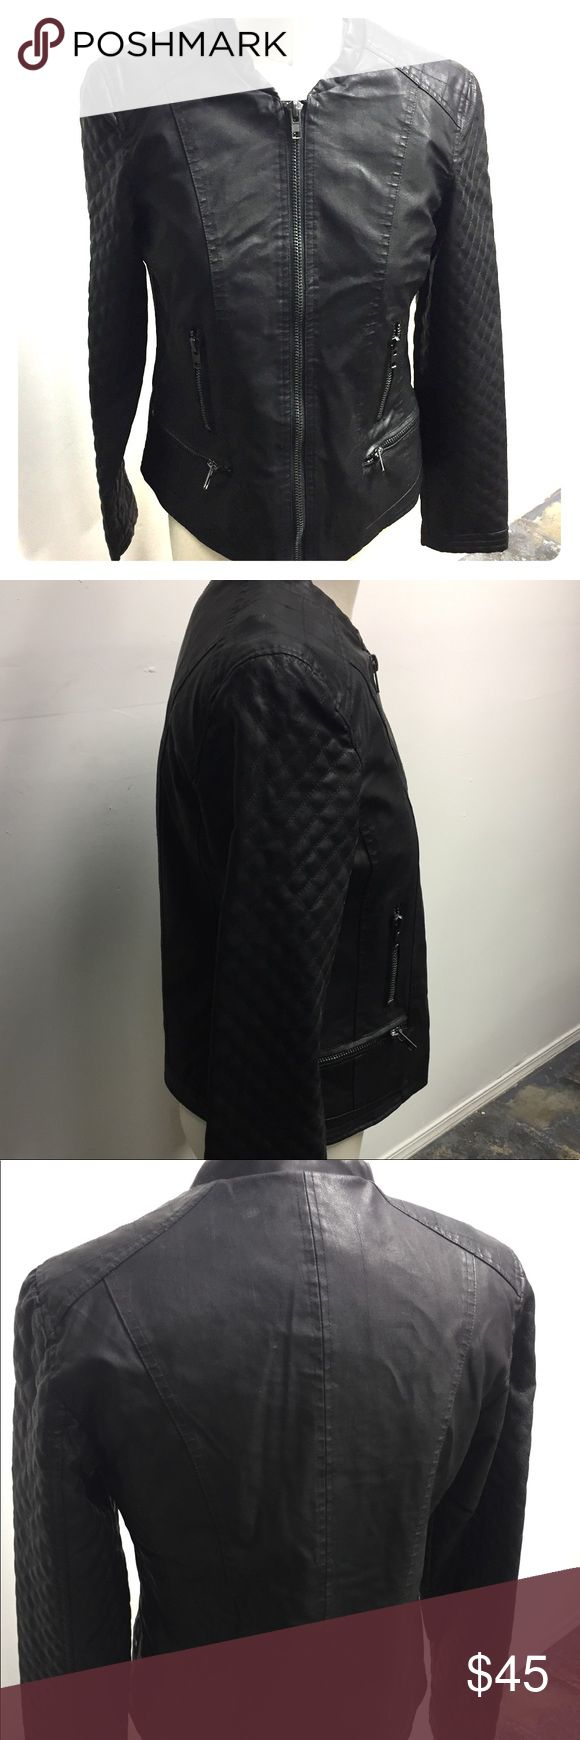 Black faux leather jacket French label  Black faux leather jacket with zip closure  Brand new Best Mountain Jackets & Coats